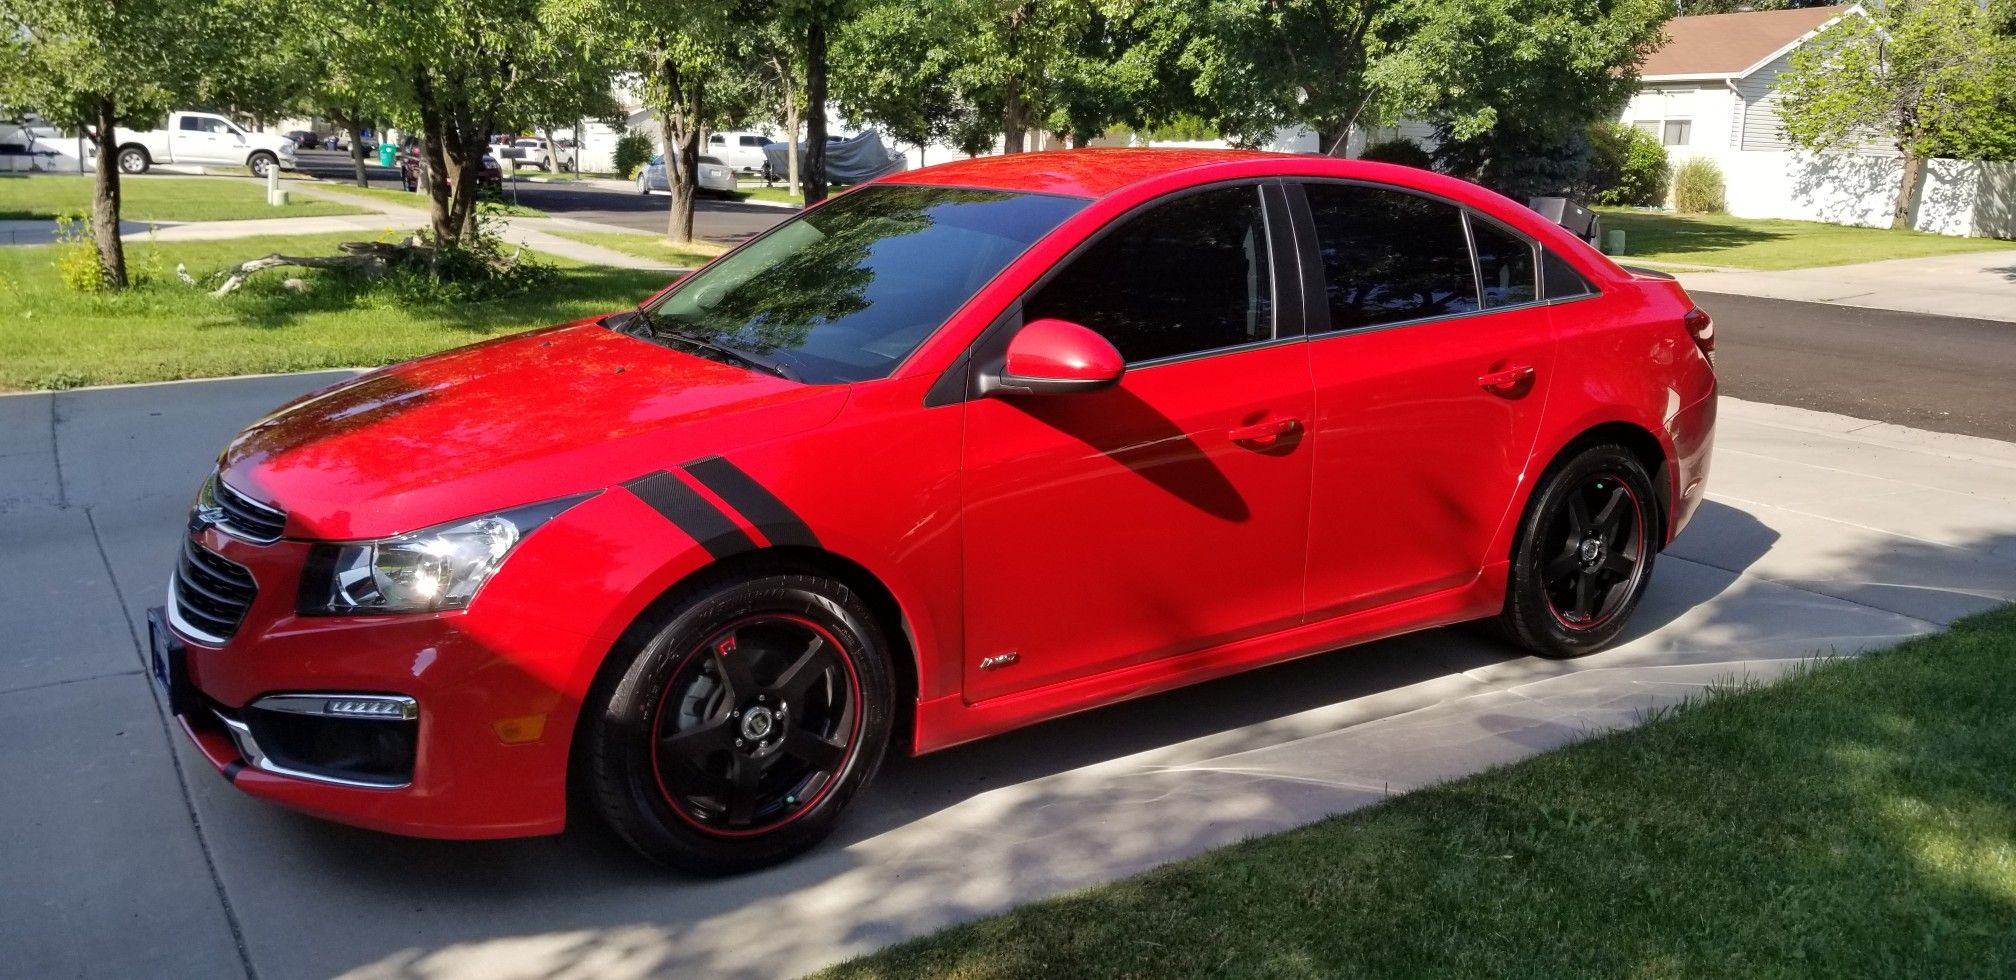 Fender Strips Fia Stripes Rims Black And Red Tinted Windows